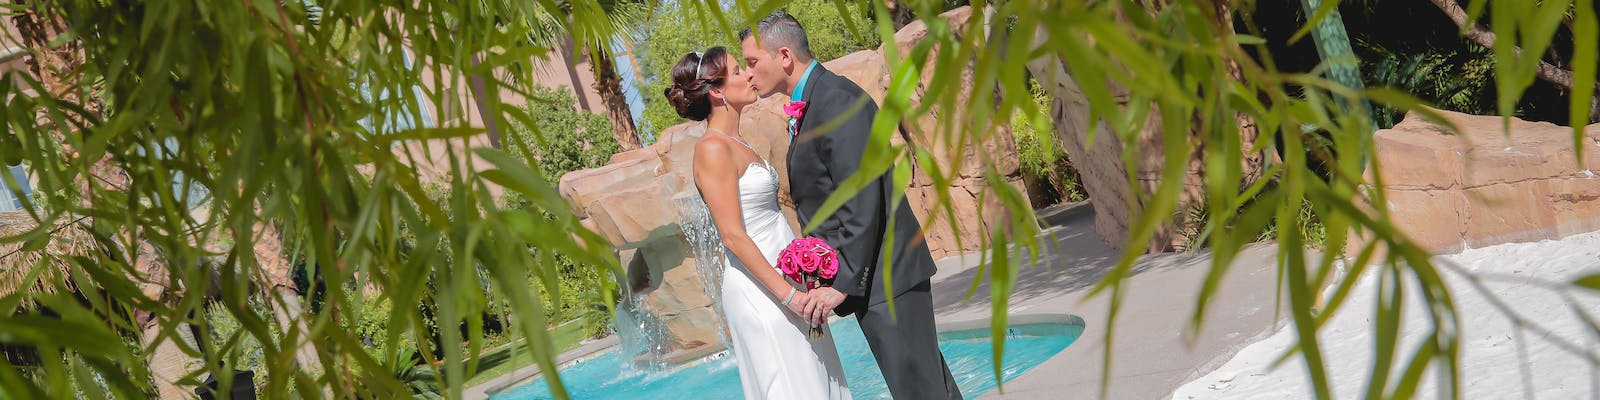 Newlyweds framed by tree leaves are kissing poolside